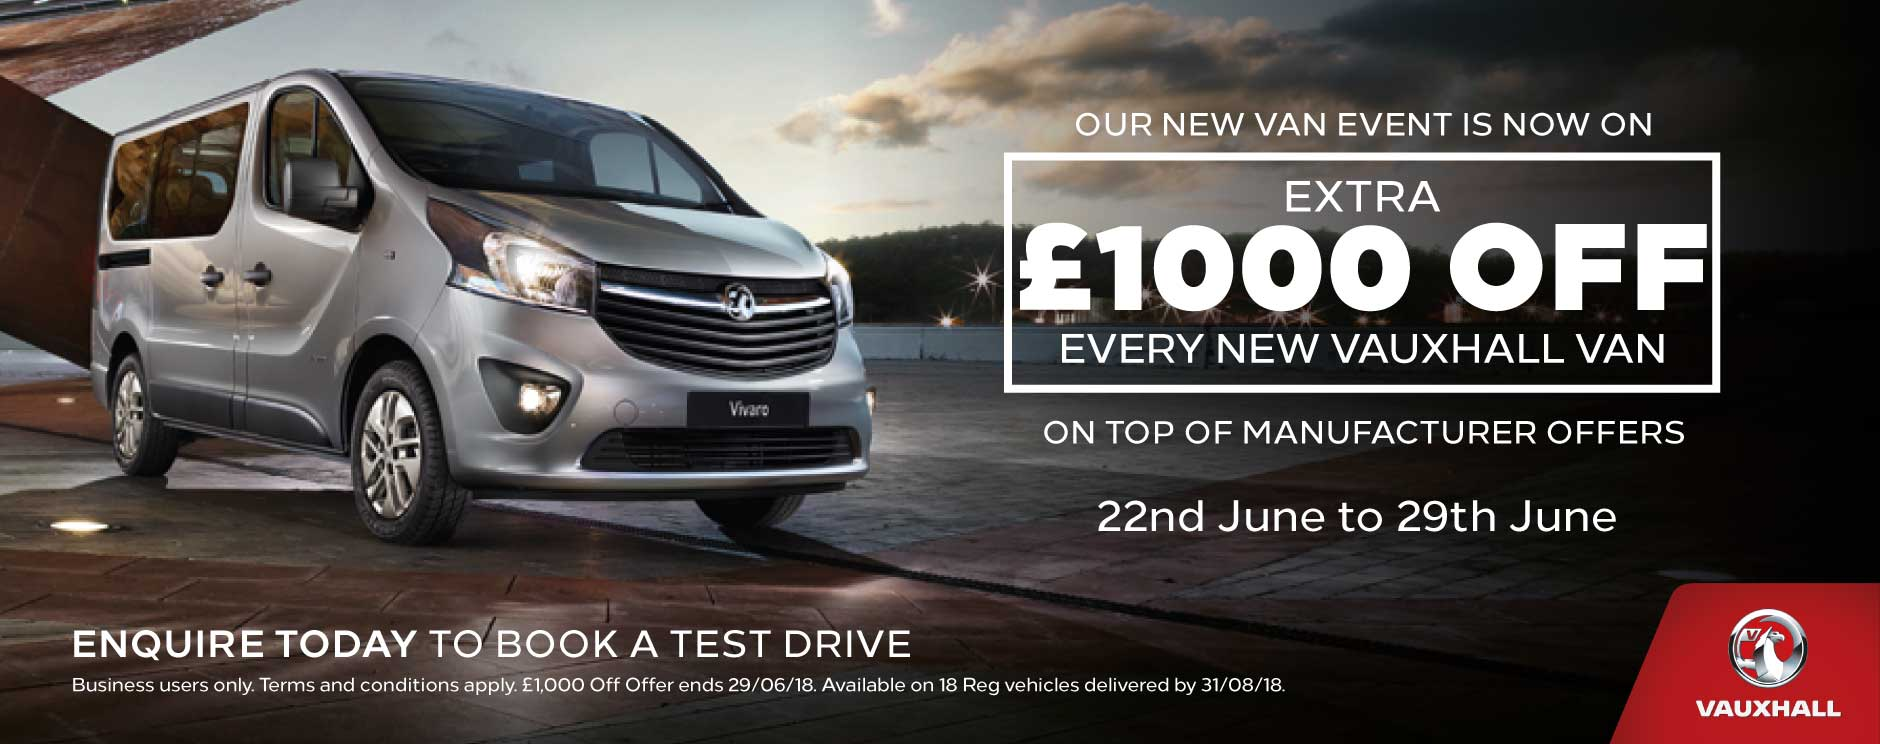 �1000 Off New Vans June 2018 - BSM Vauxhall